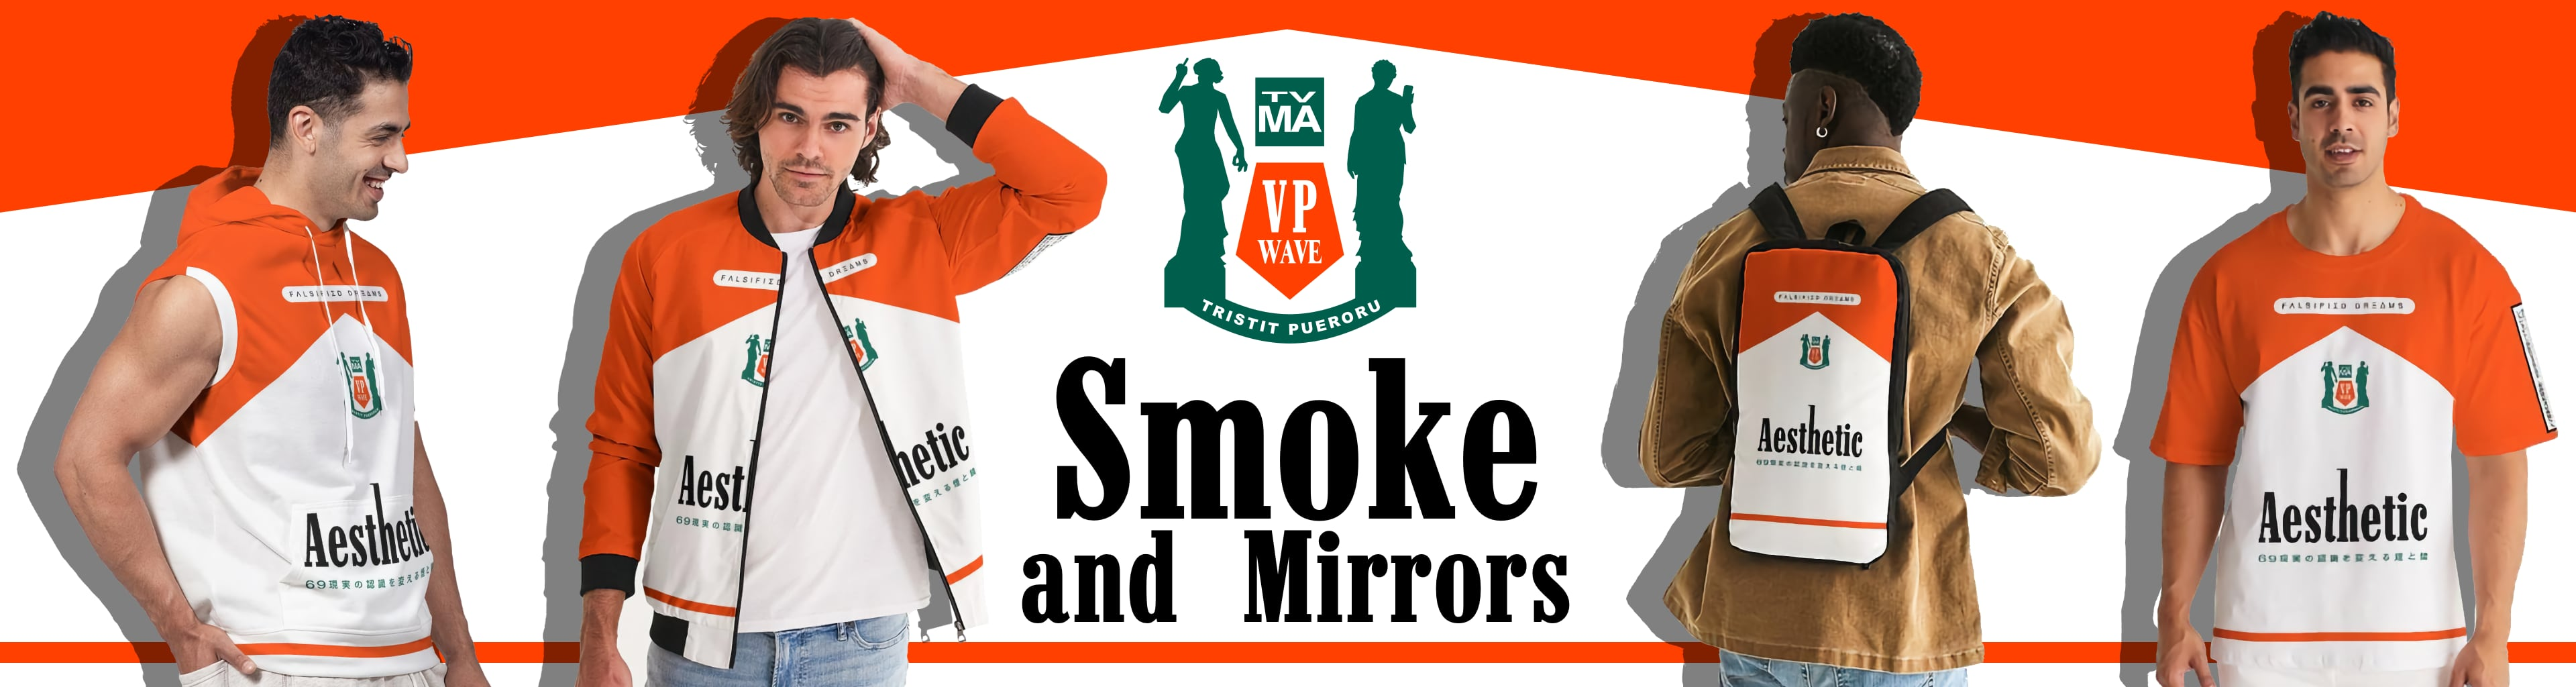 Smoke and Mirrors Collection Banner